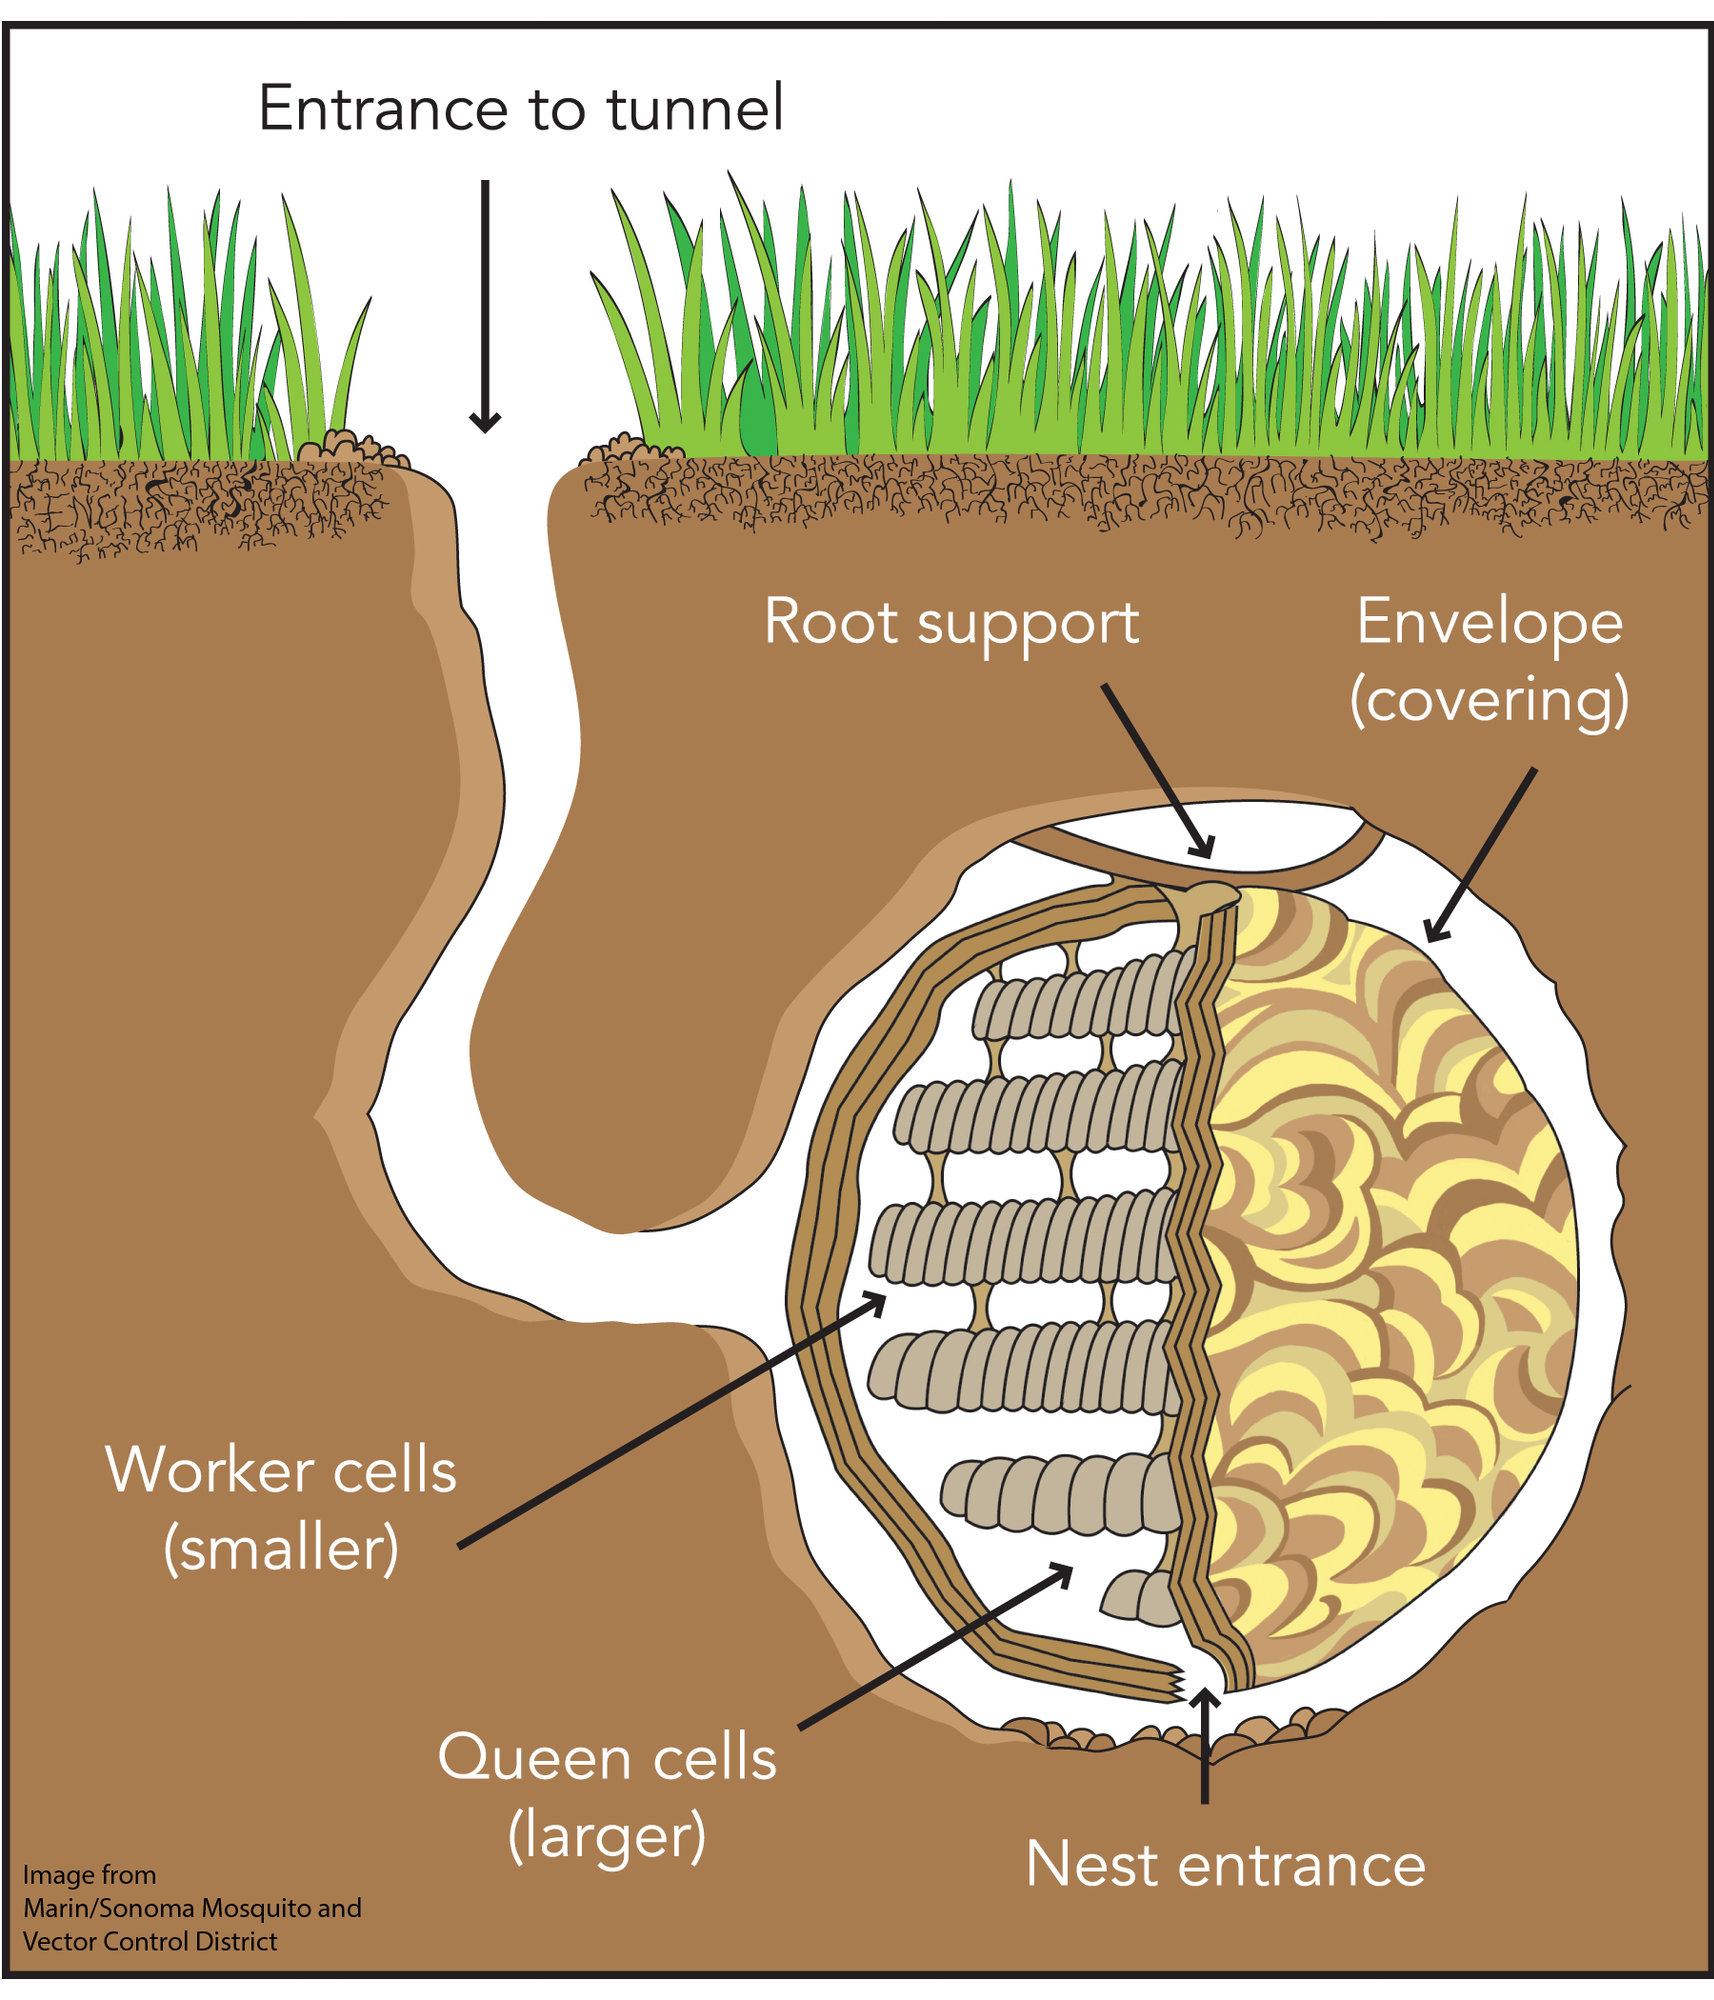 A computer-generated image of the side, underground view of a yellowjacket nest. The entrance to the tunnel is at ground level, in between blades of green grass.  The tunnel goes down into the brown dirt until it forms a large round space. Inside the space is the nest, which is connected to the wall of the hole by being connected to a root. The inside of the nest has dozens/hundreds/thousands of little cells for the queen yellowjacket to lay eggs in. The cells are surrounded by a covering that protects the nest. The nest can be entered through a hole in the bottom of the nest.